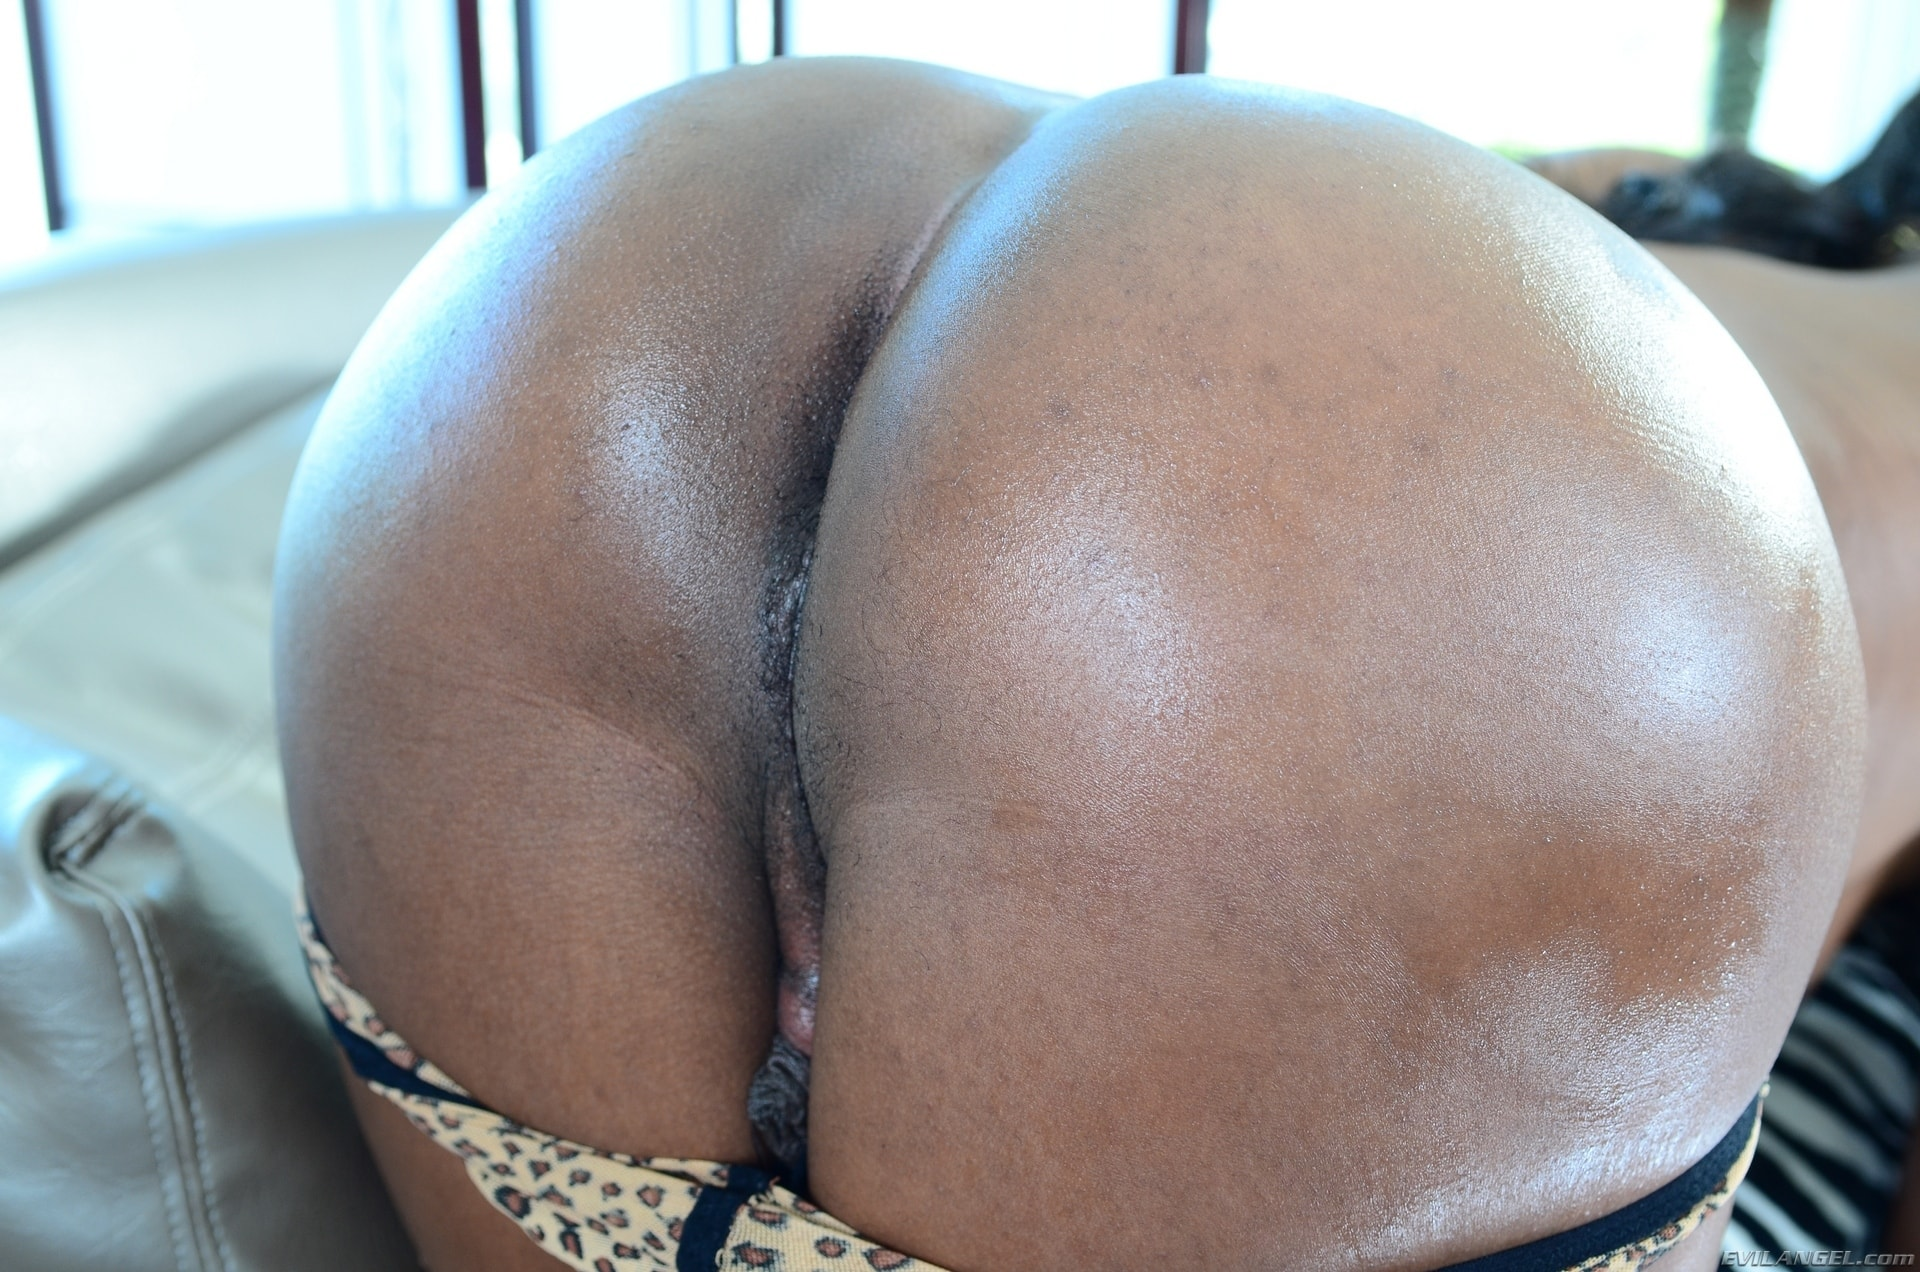 I Love Black Shemales 'Black Shemale Idol - The Auditions 04' starring Savanna Summers (Photo 28)